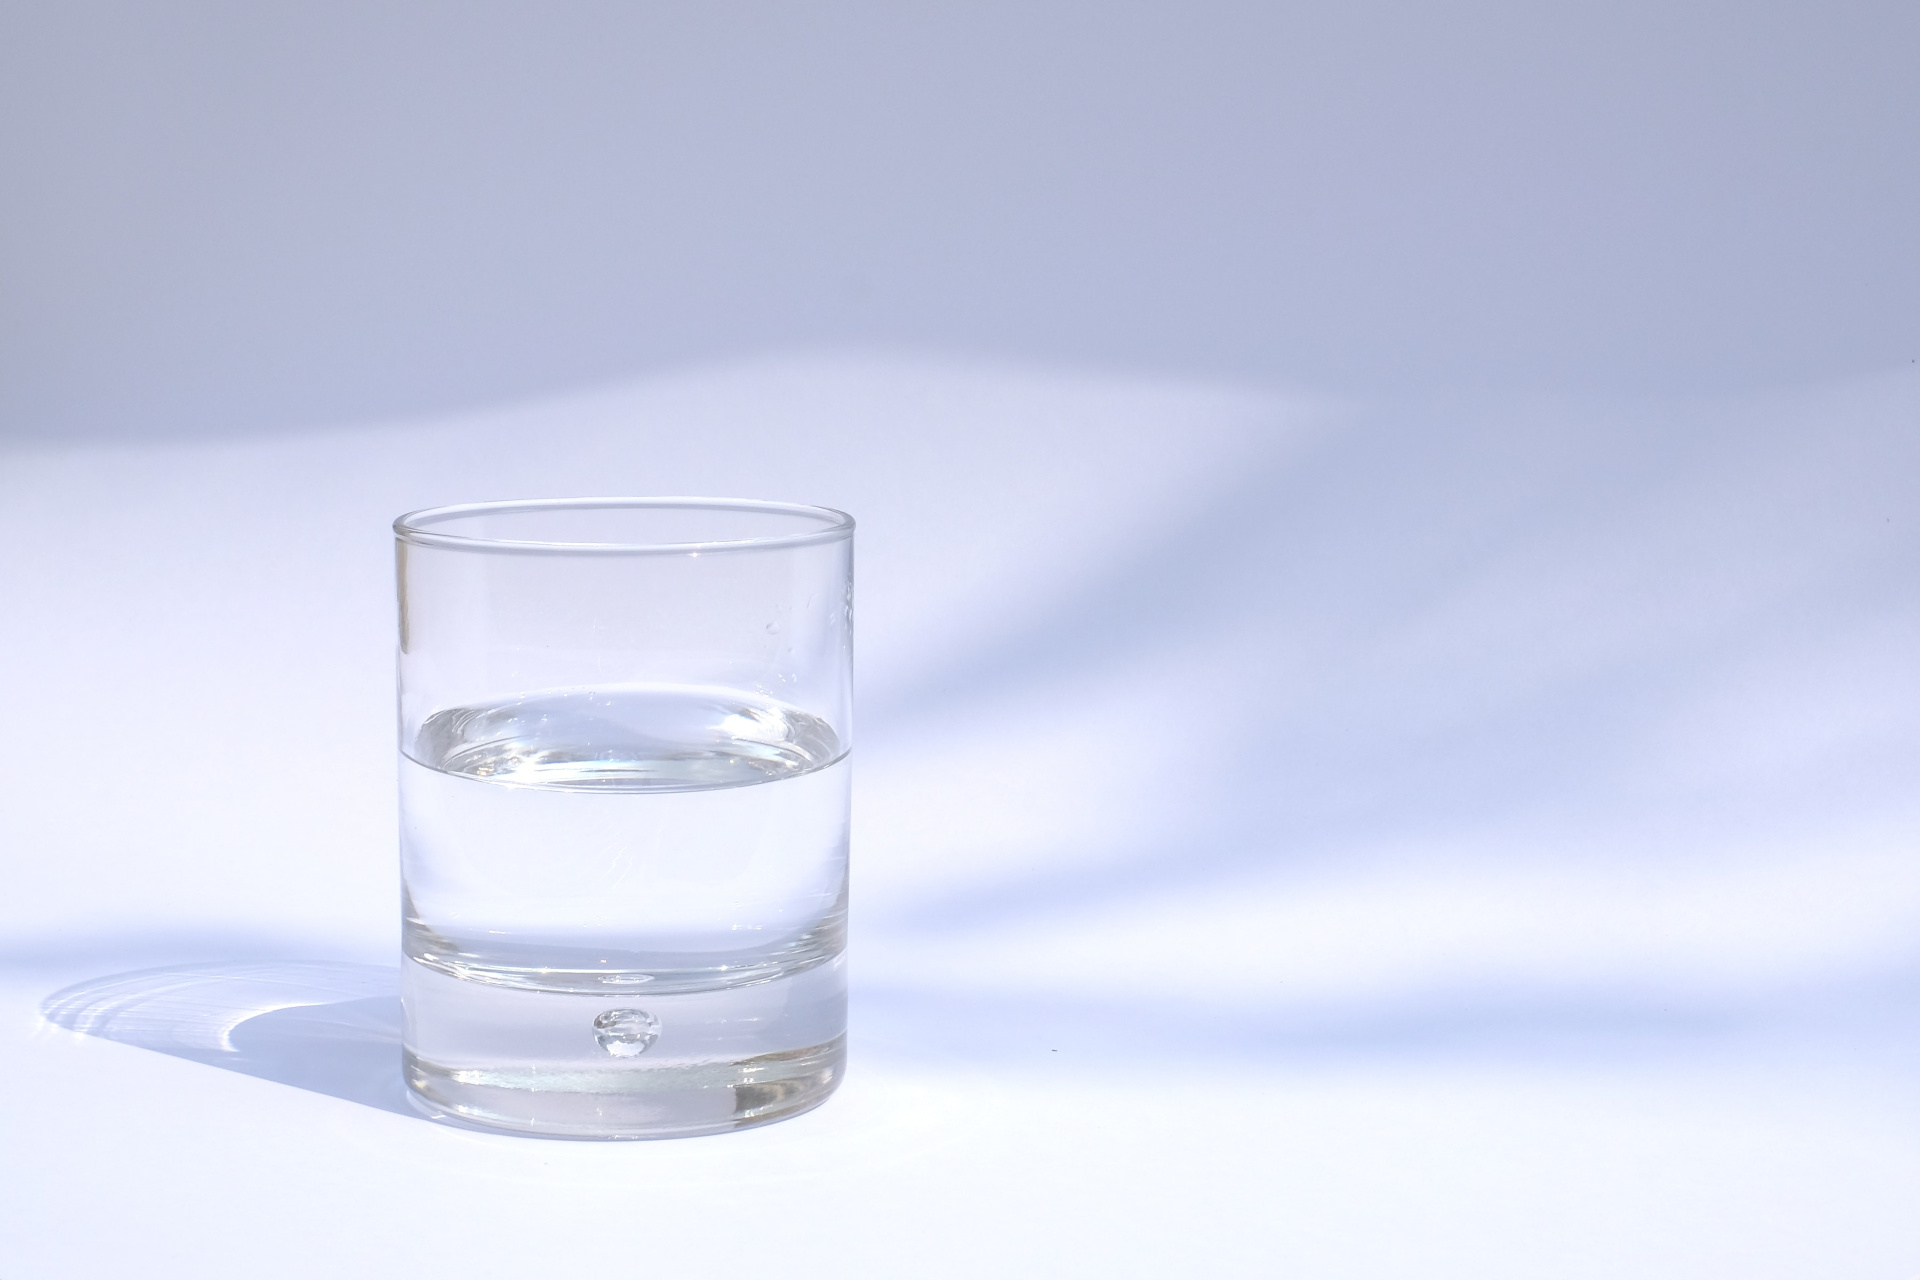 A Glass Of Water On A Light Background